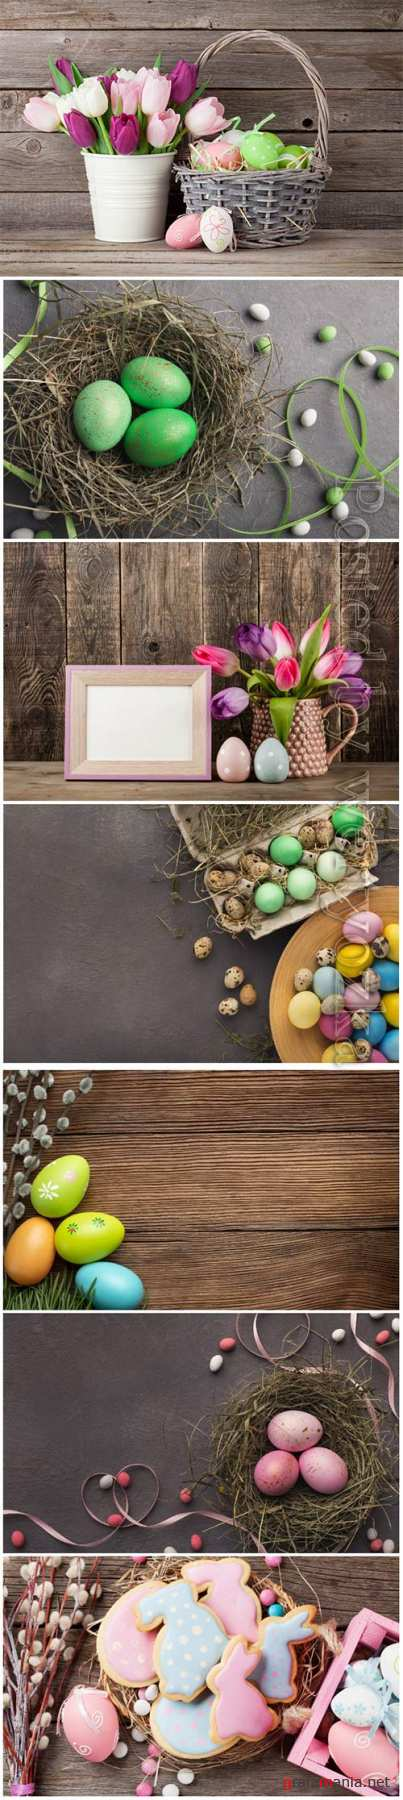 Happy Easter stock photo, Easter eggs, spring flowers # 4